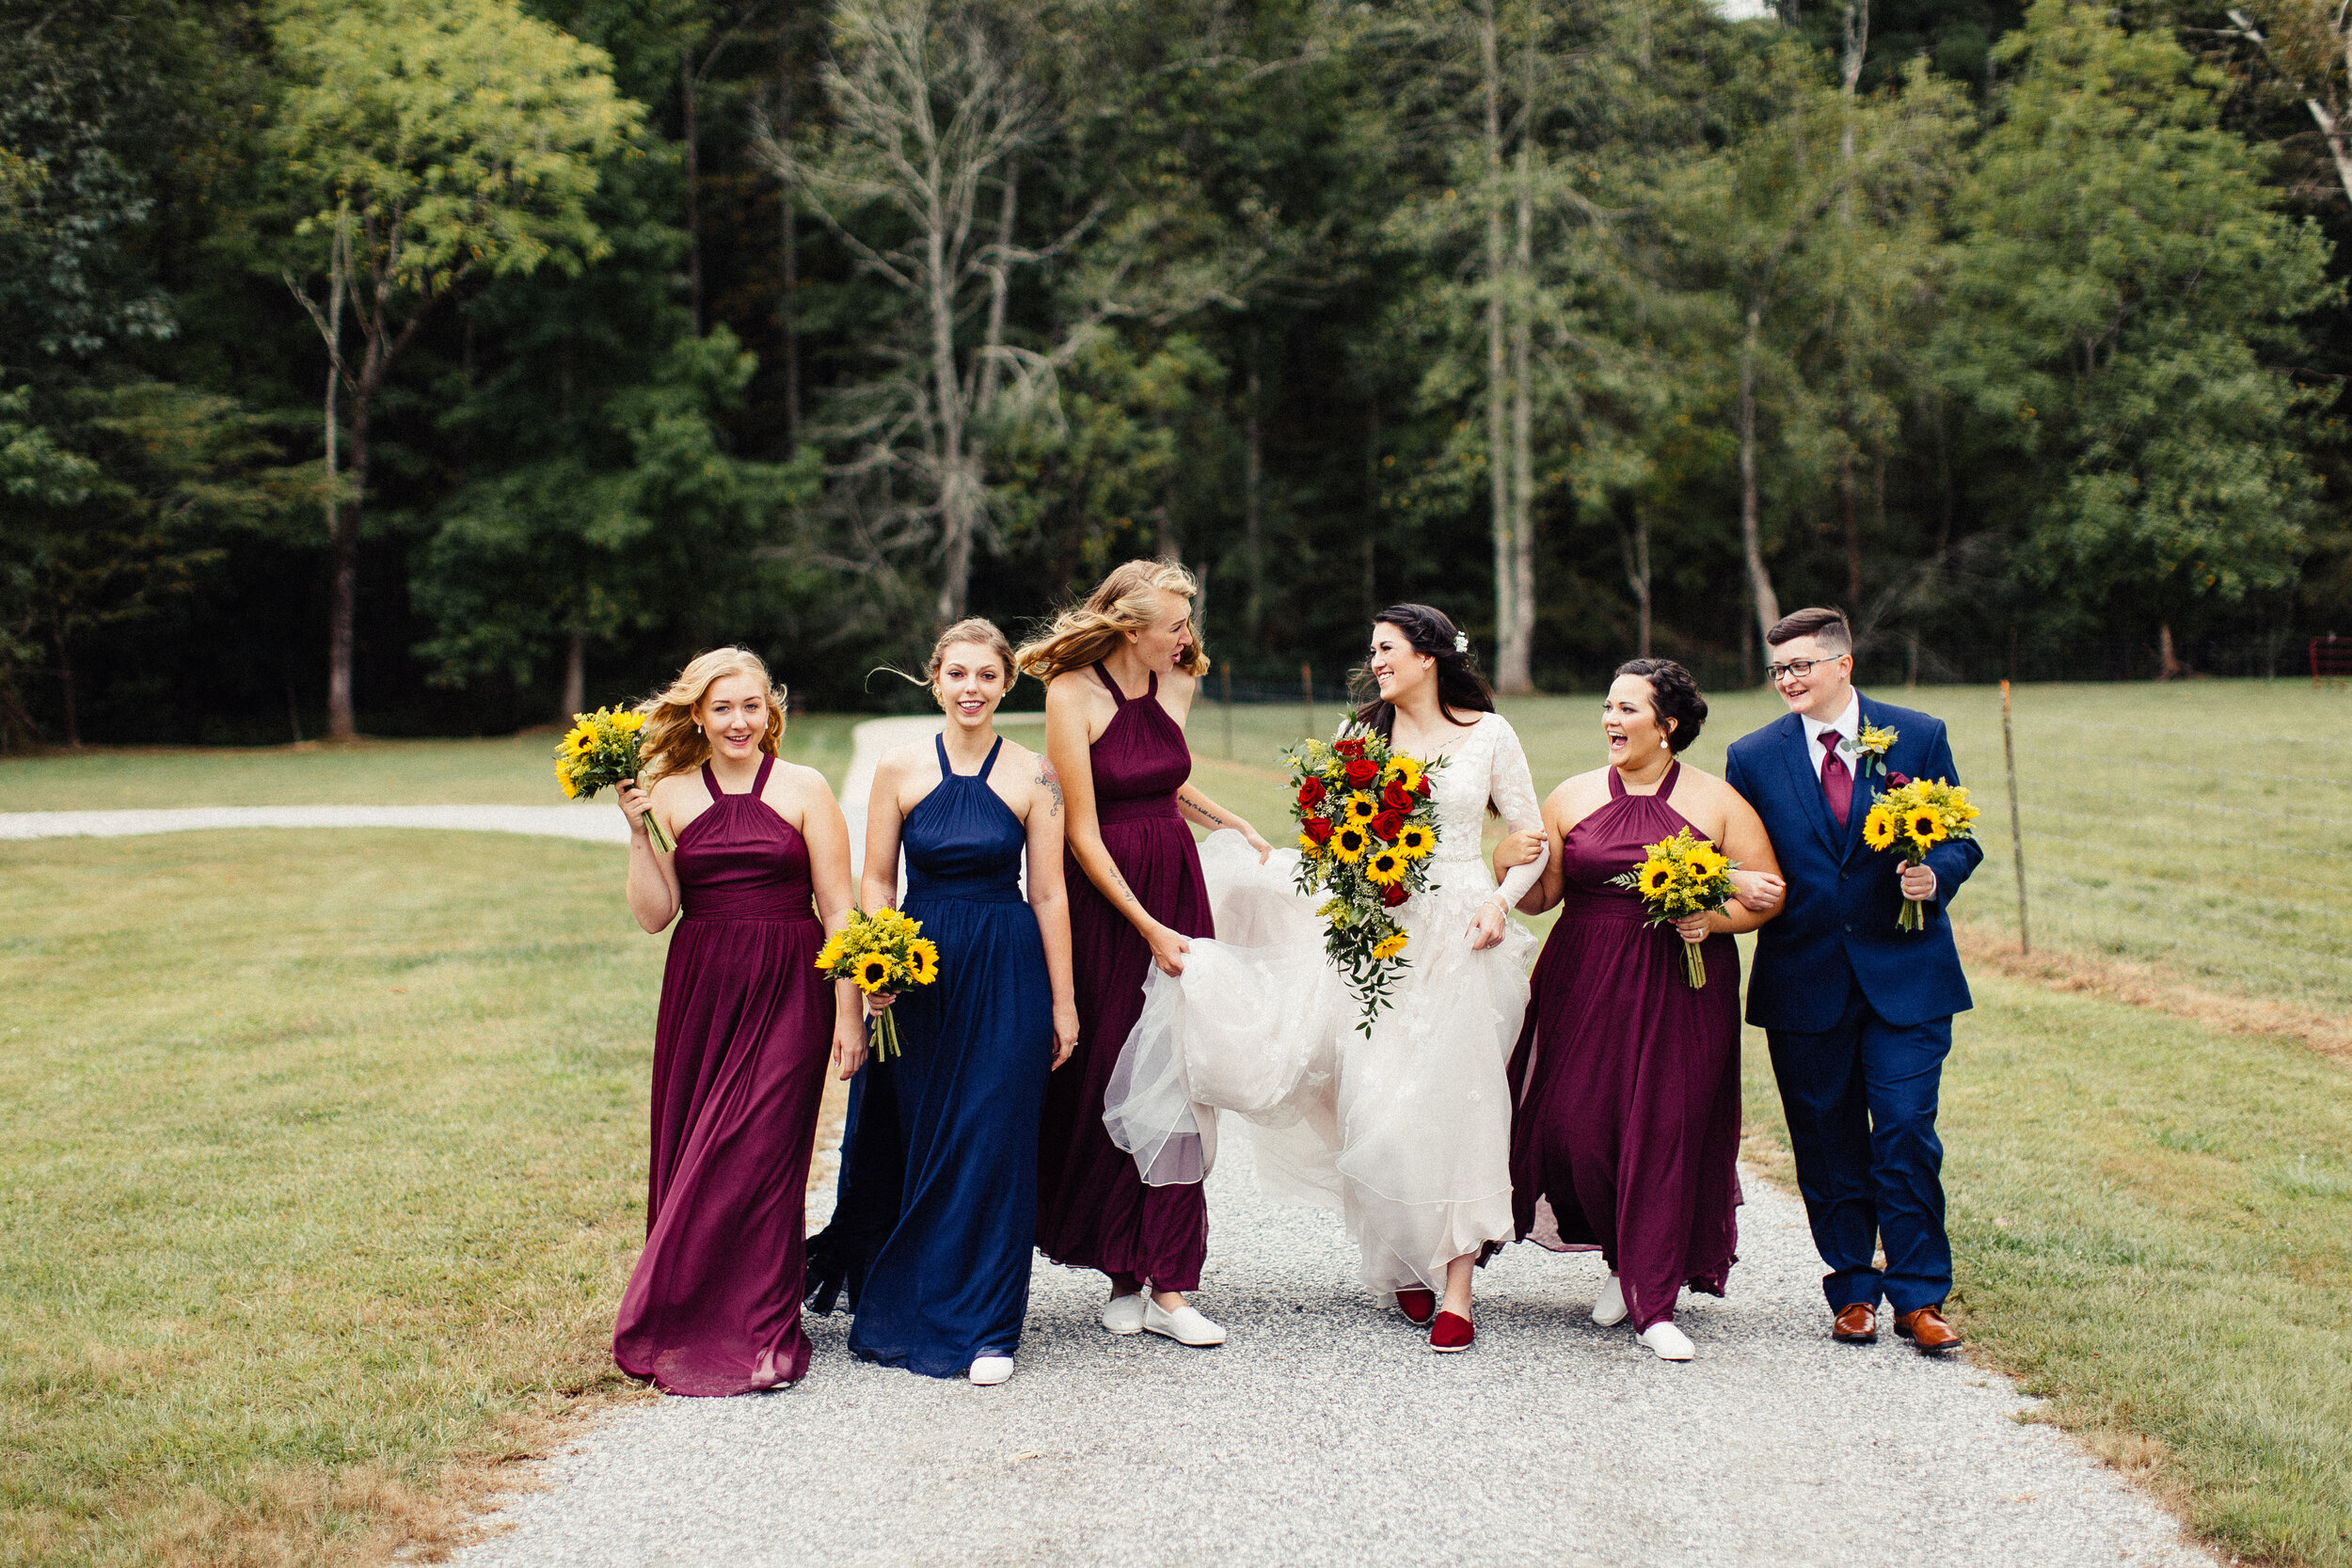 atlanta_wedding_photographers_georgia_same_sex_rustic_barn_farm_lesbian_weddings_inclusive_1178.jpg